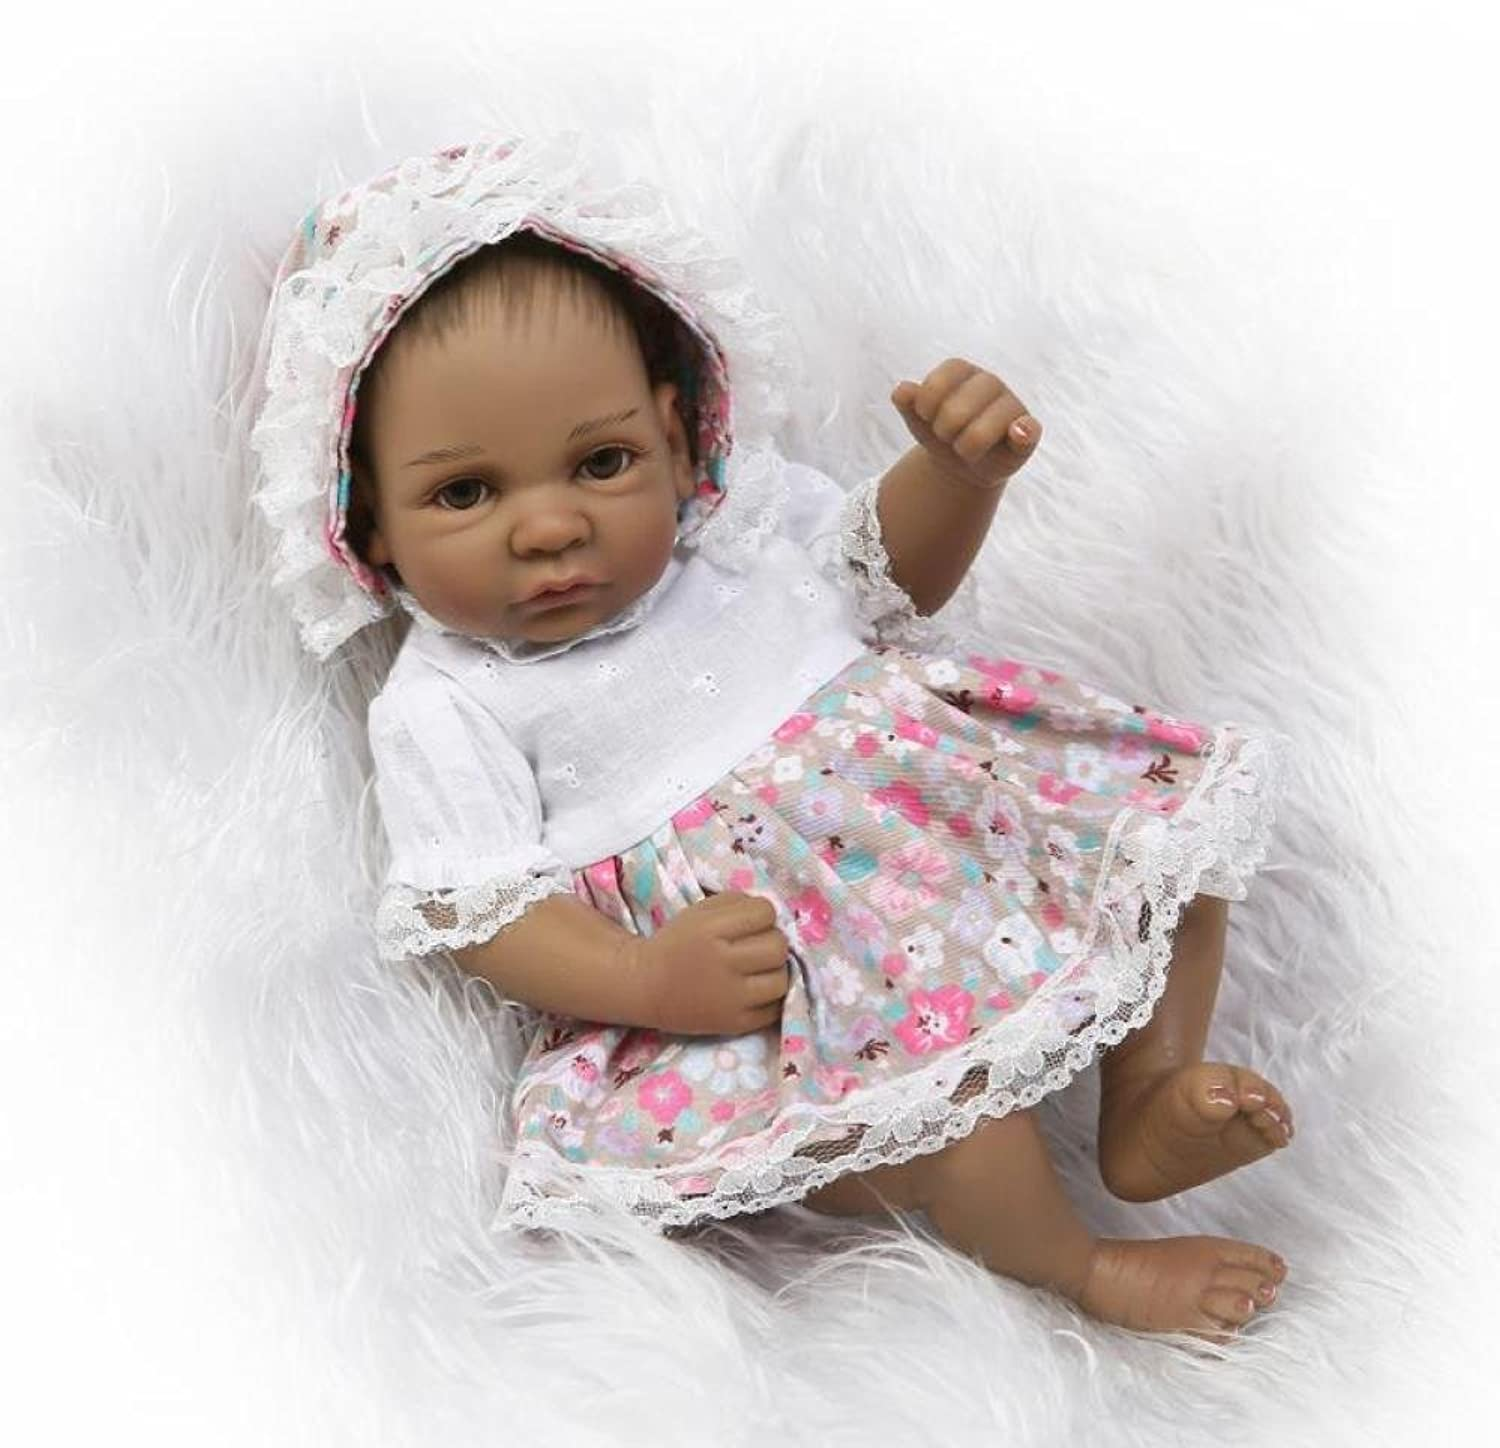 11 inch Real Life Looking Baby Dolls Soft Silicone Reborns Lifelike Realistic Newborn Baby Girl Toy Gift 27 cm